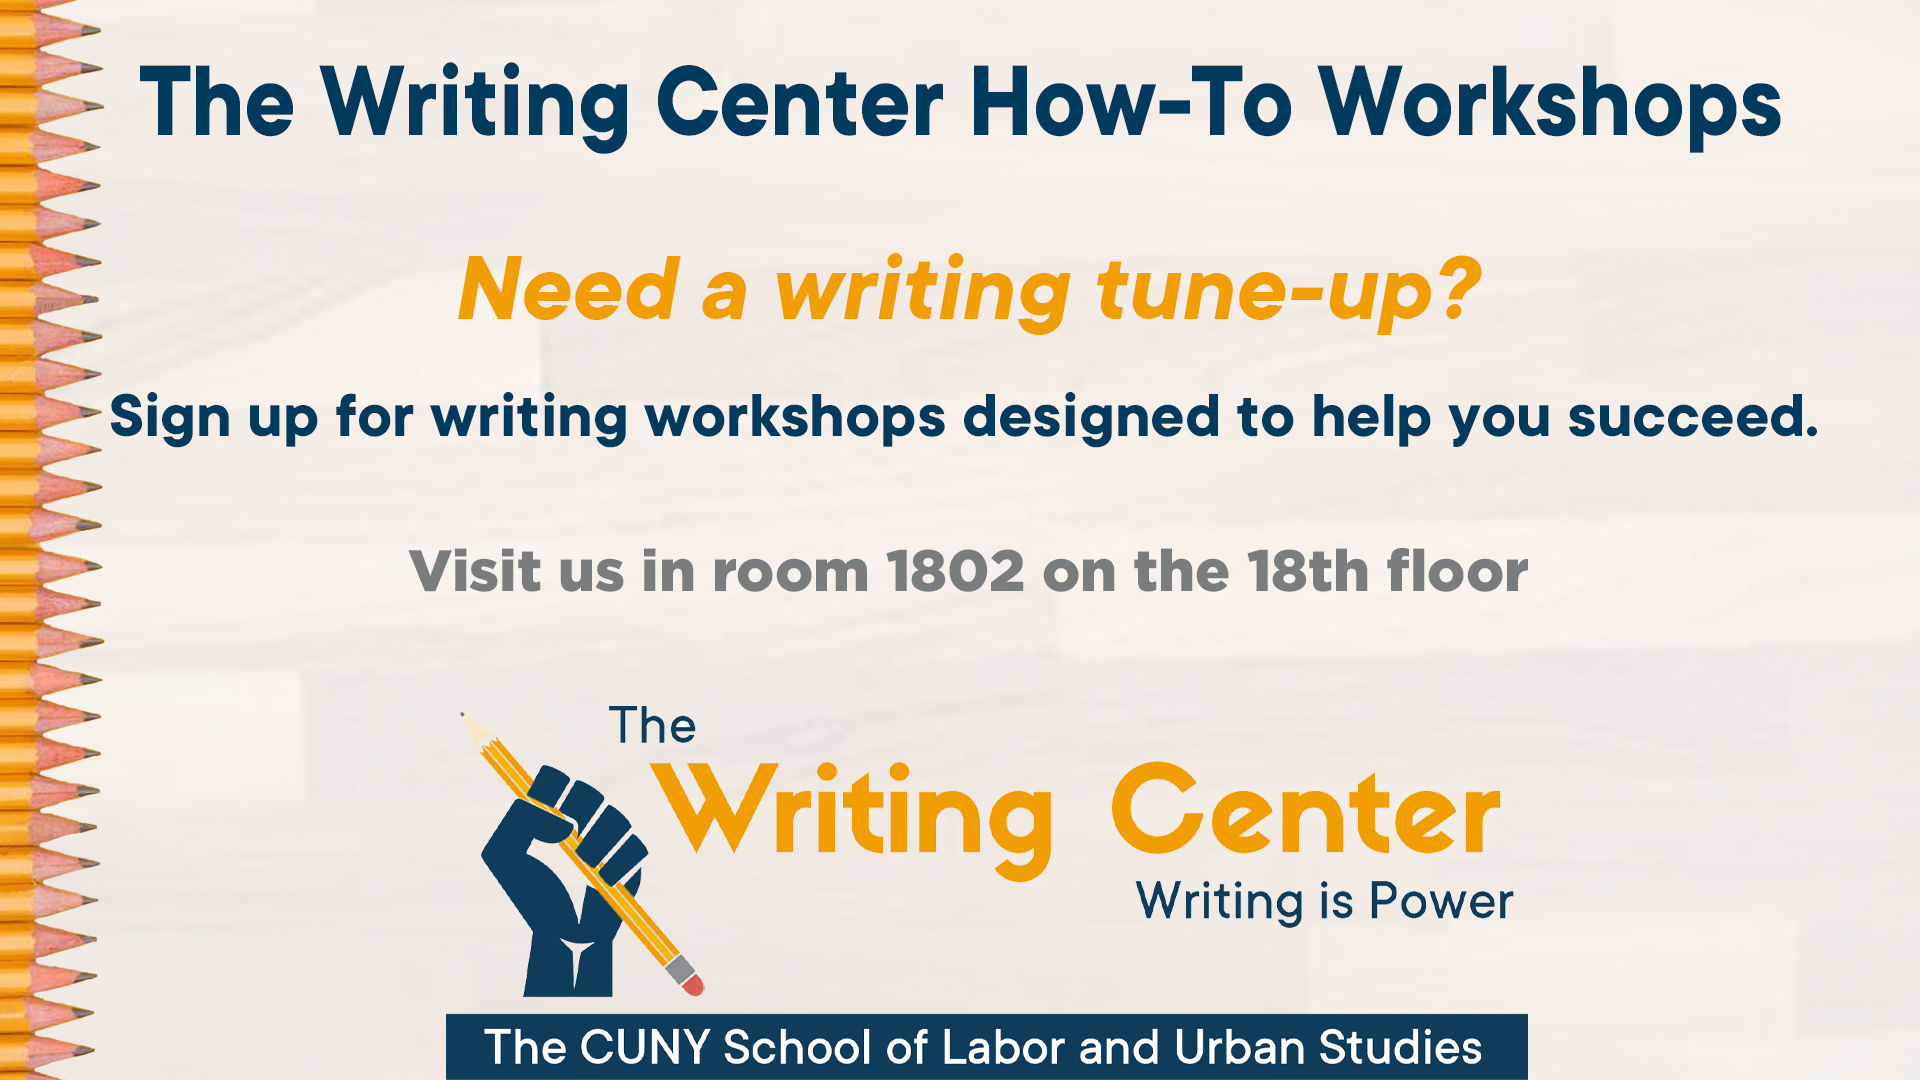 Need a writing tune up? Sign up for writing workshops designed to help you succeed